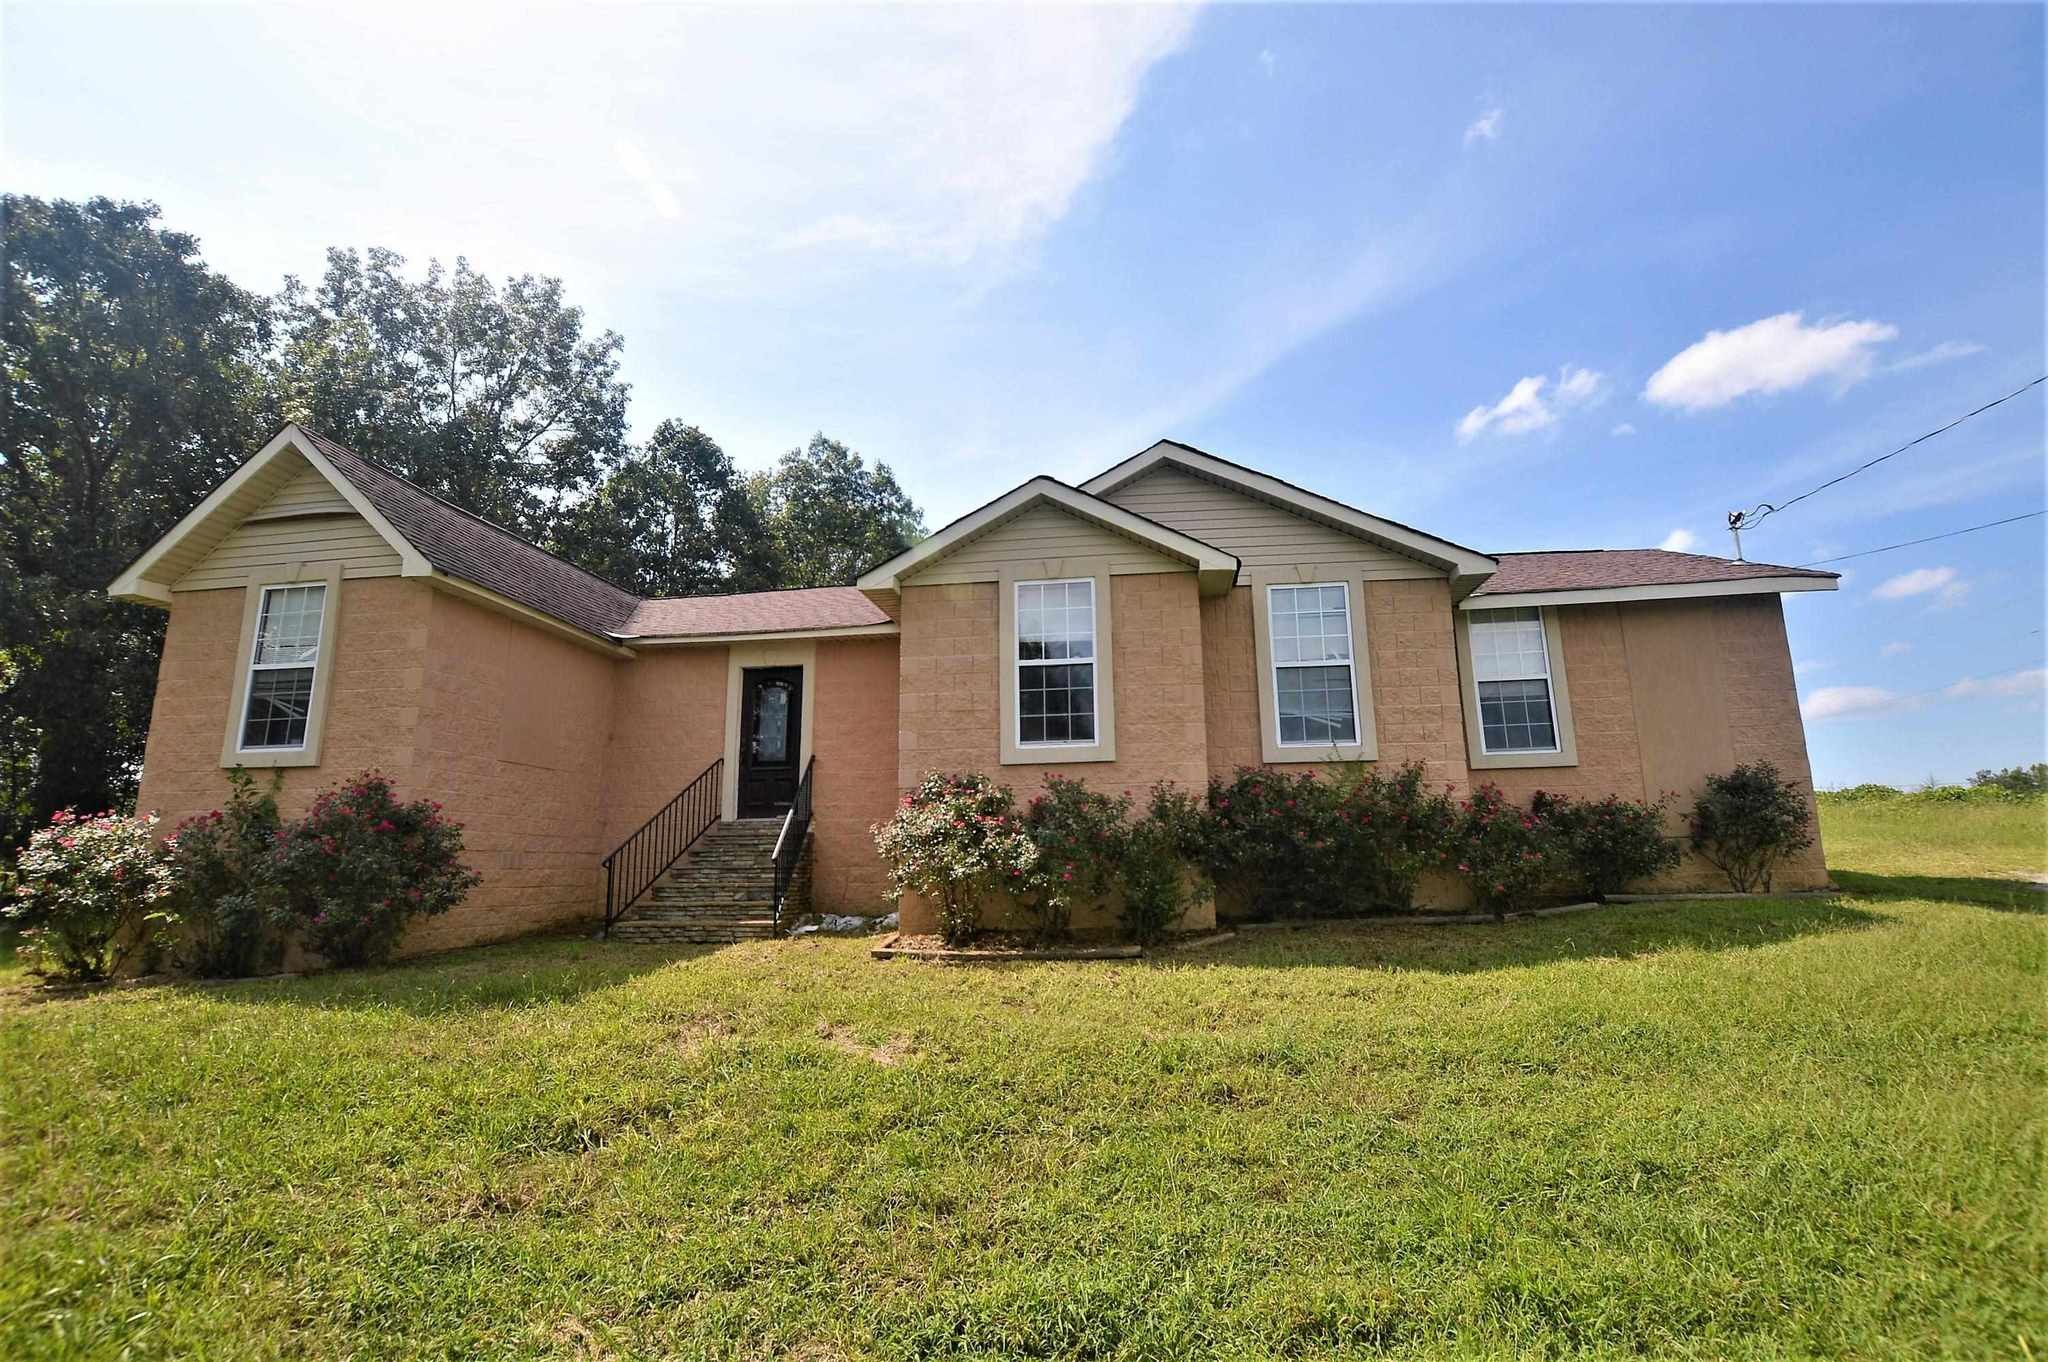 Renovated 3-Bedroom House In Vinemont